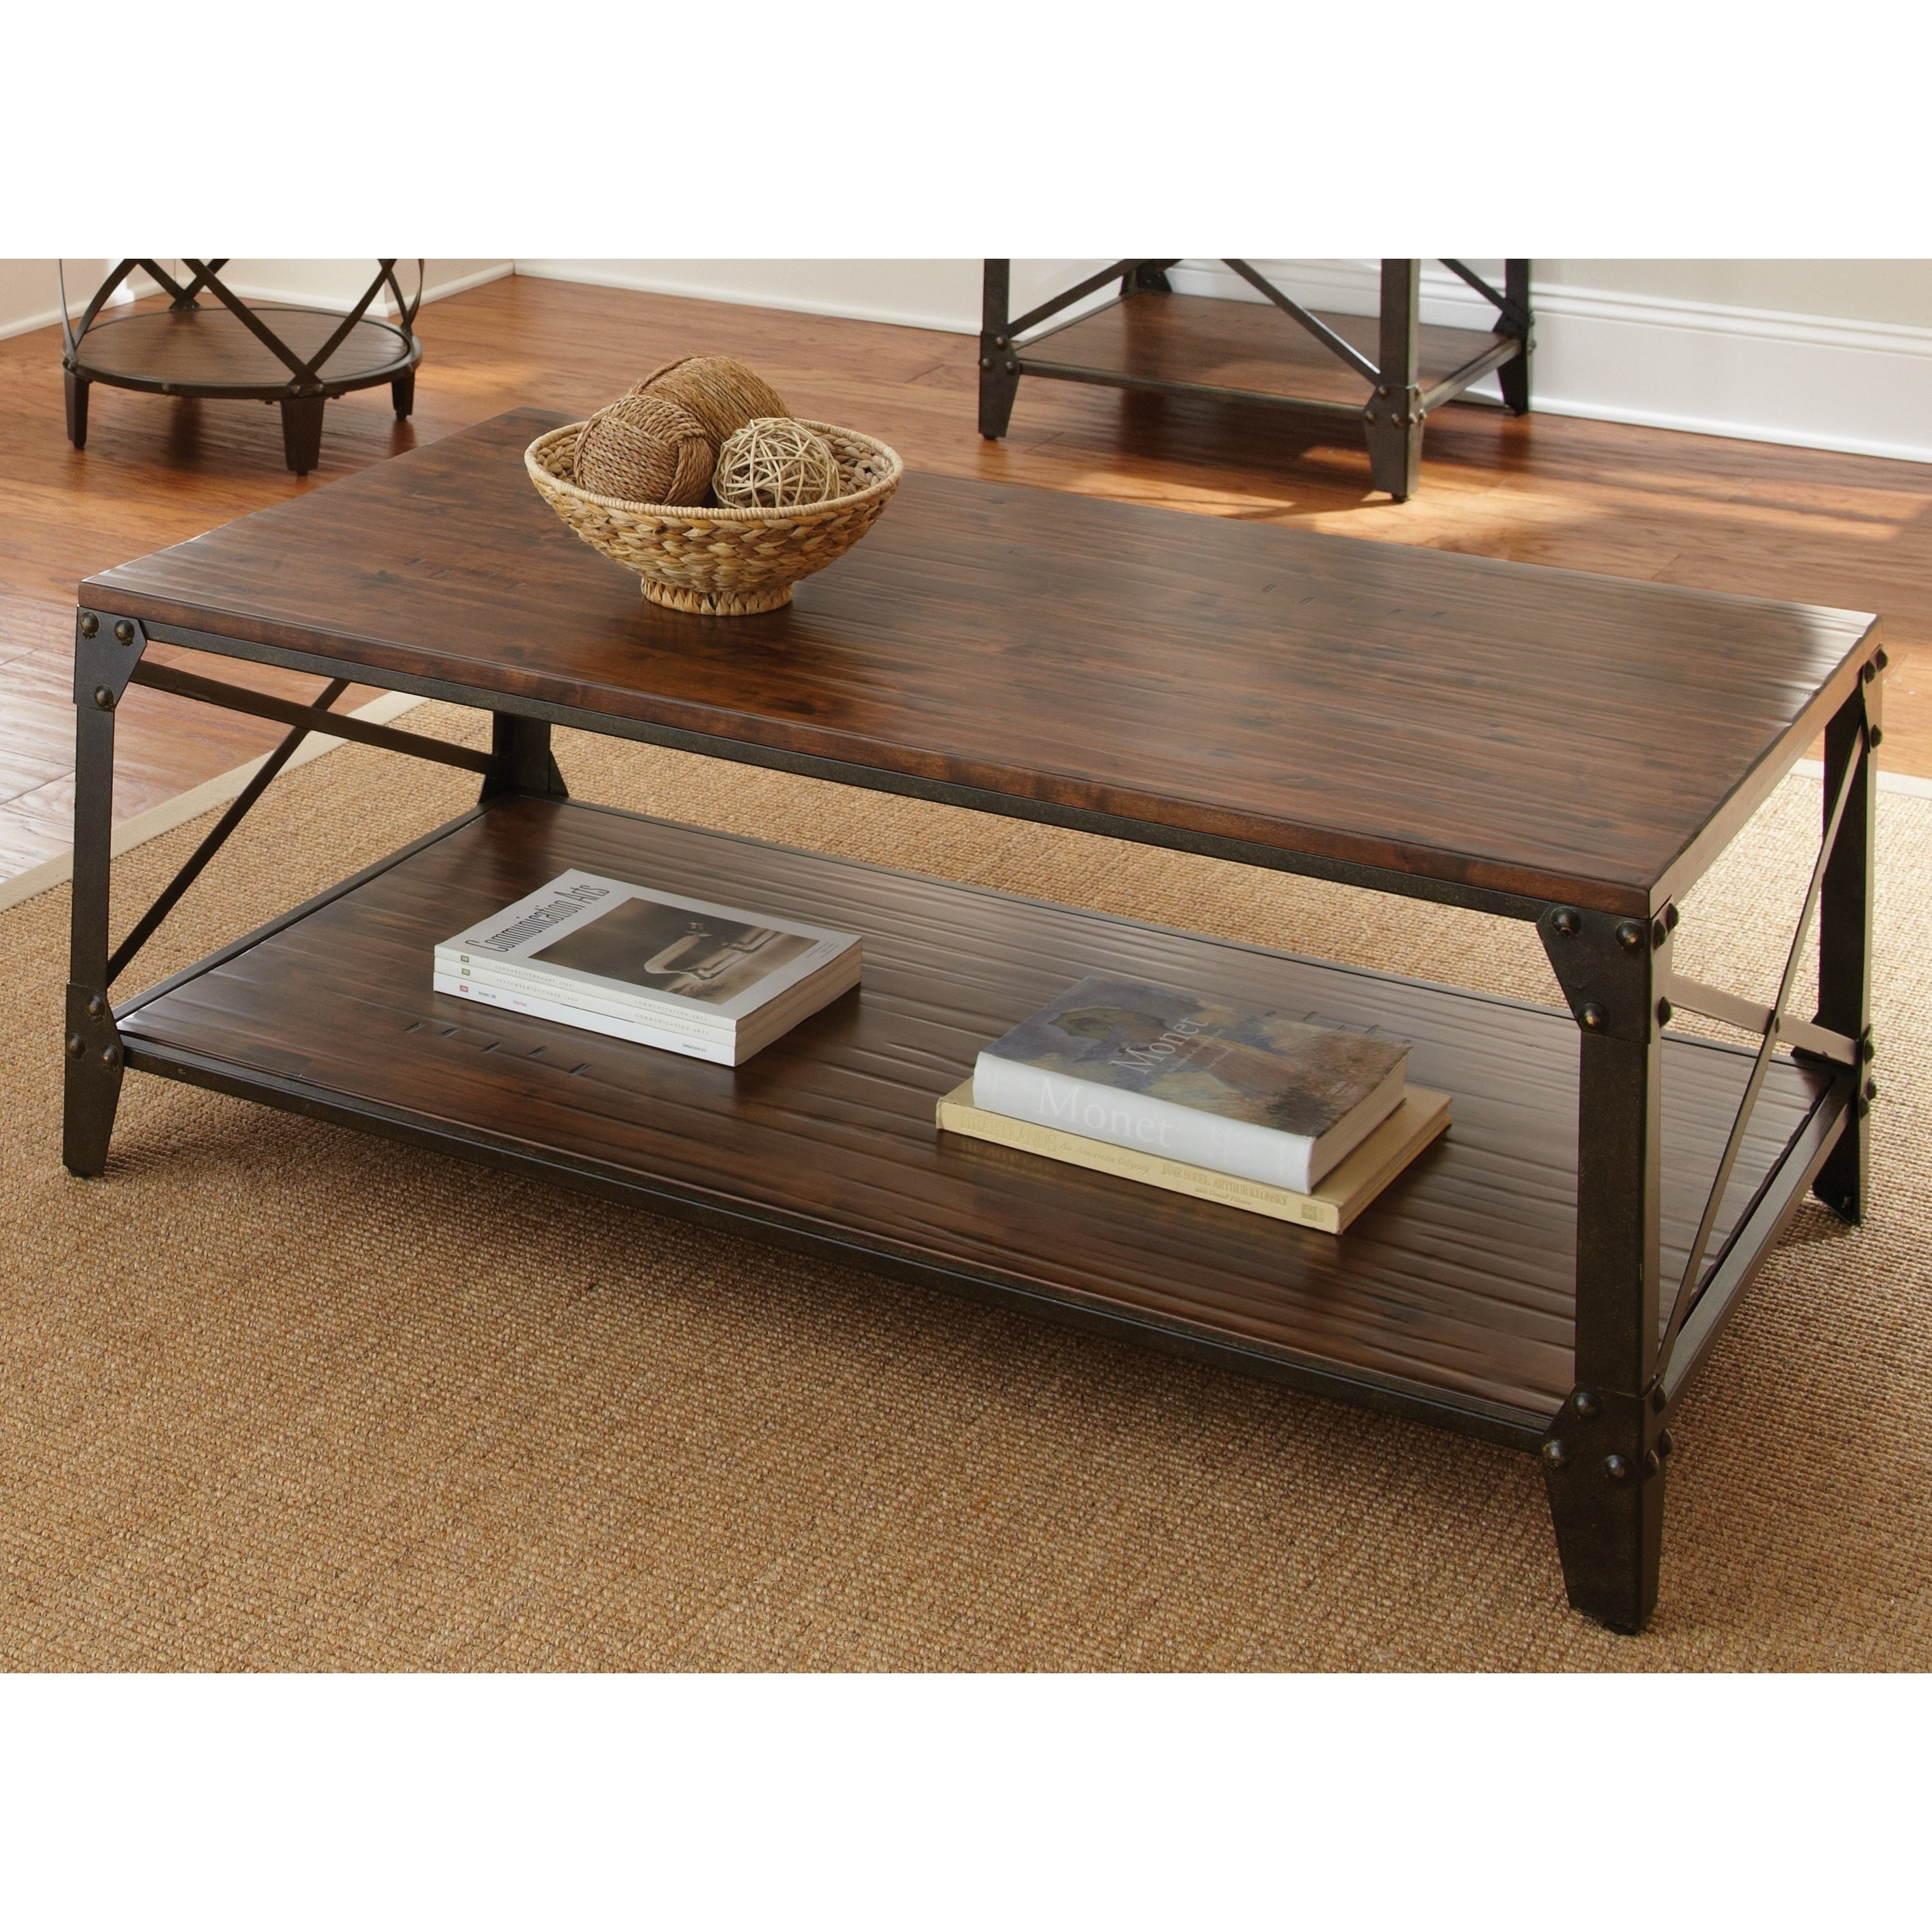 Very Impressive portraiture of  Coffee Table Overstock Shopping Great Deals on Coffee Sofa & End with #90613B color and 2823x2823 pixels